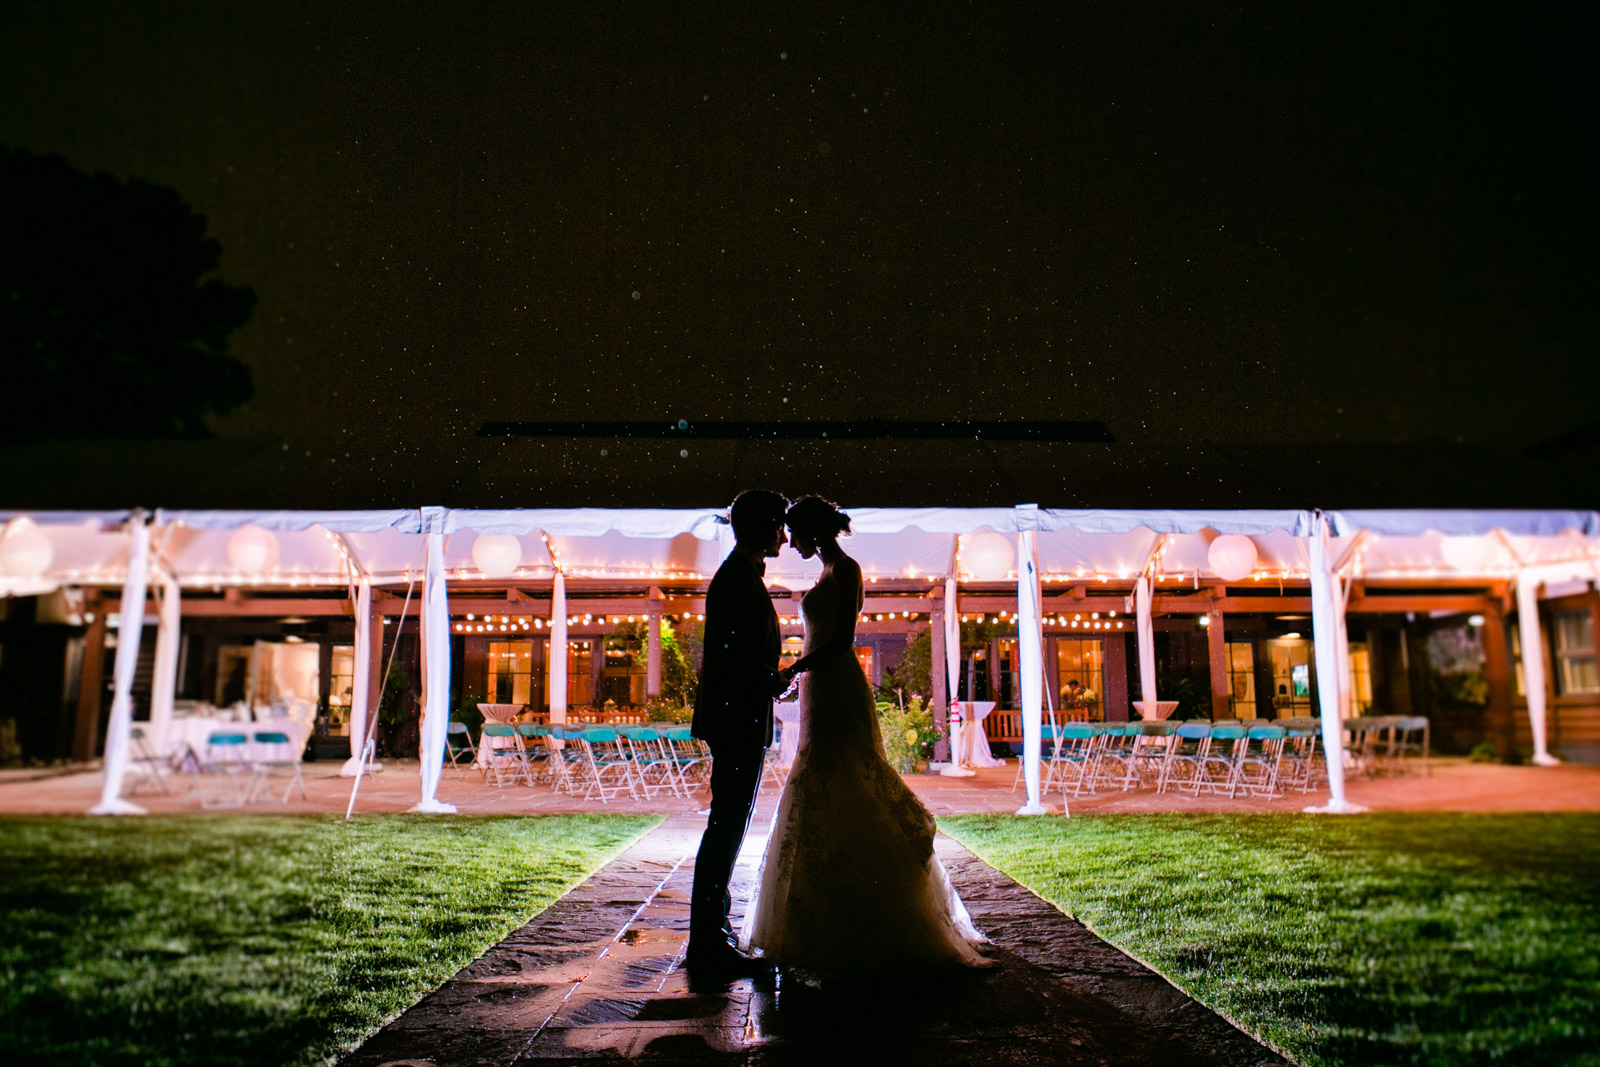 bride and groom at night, bride and groom wedding photography, night bride and groom portraits, rainy day wedding photography